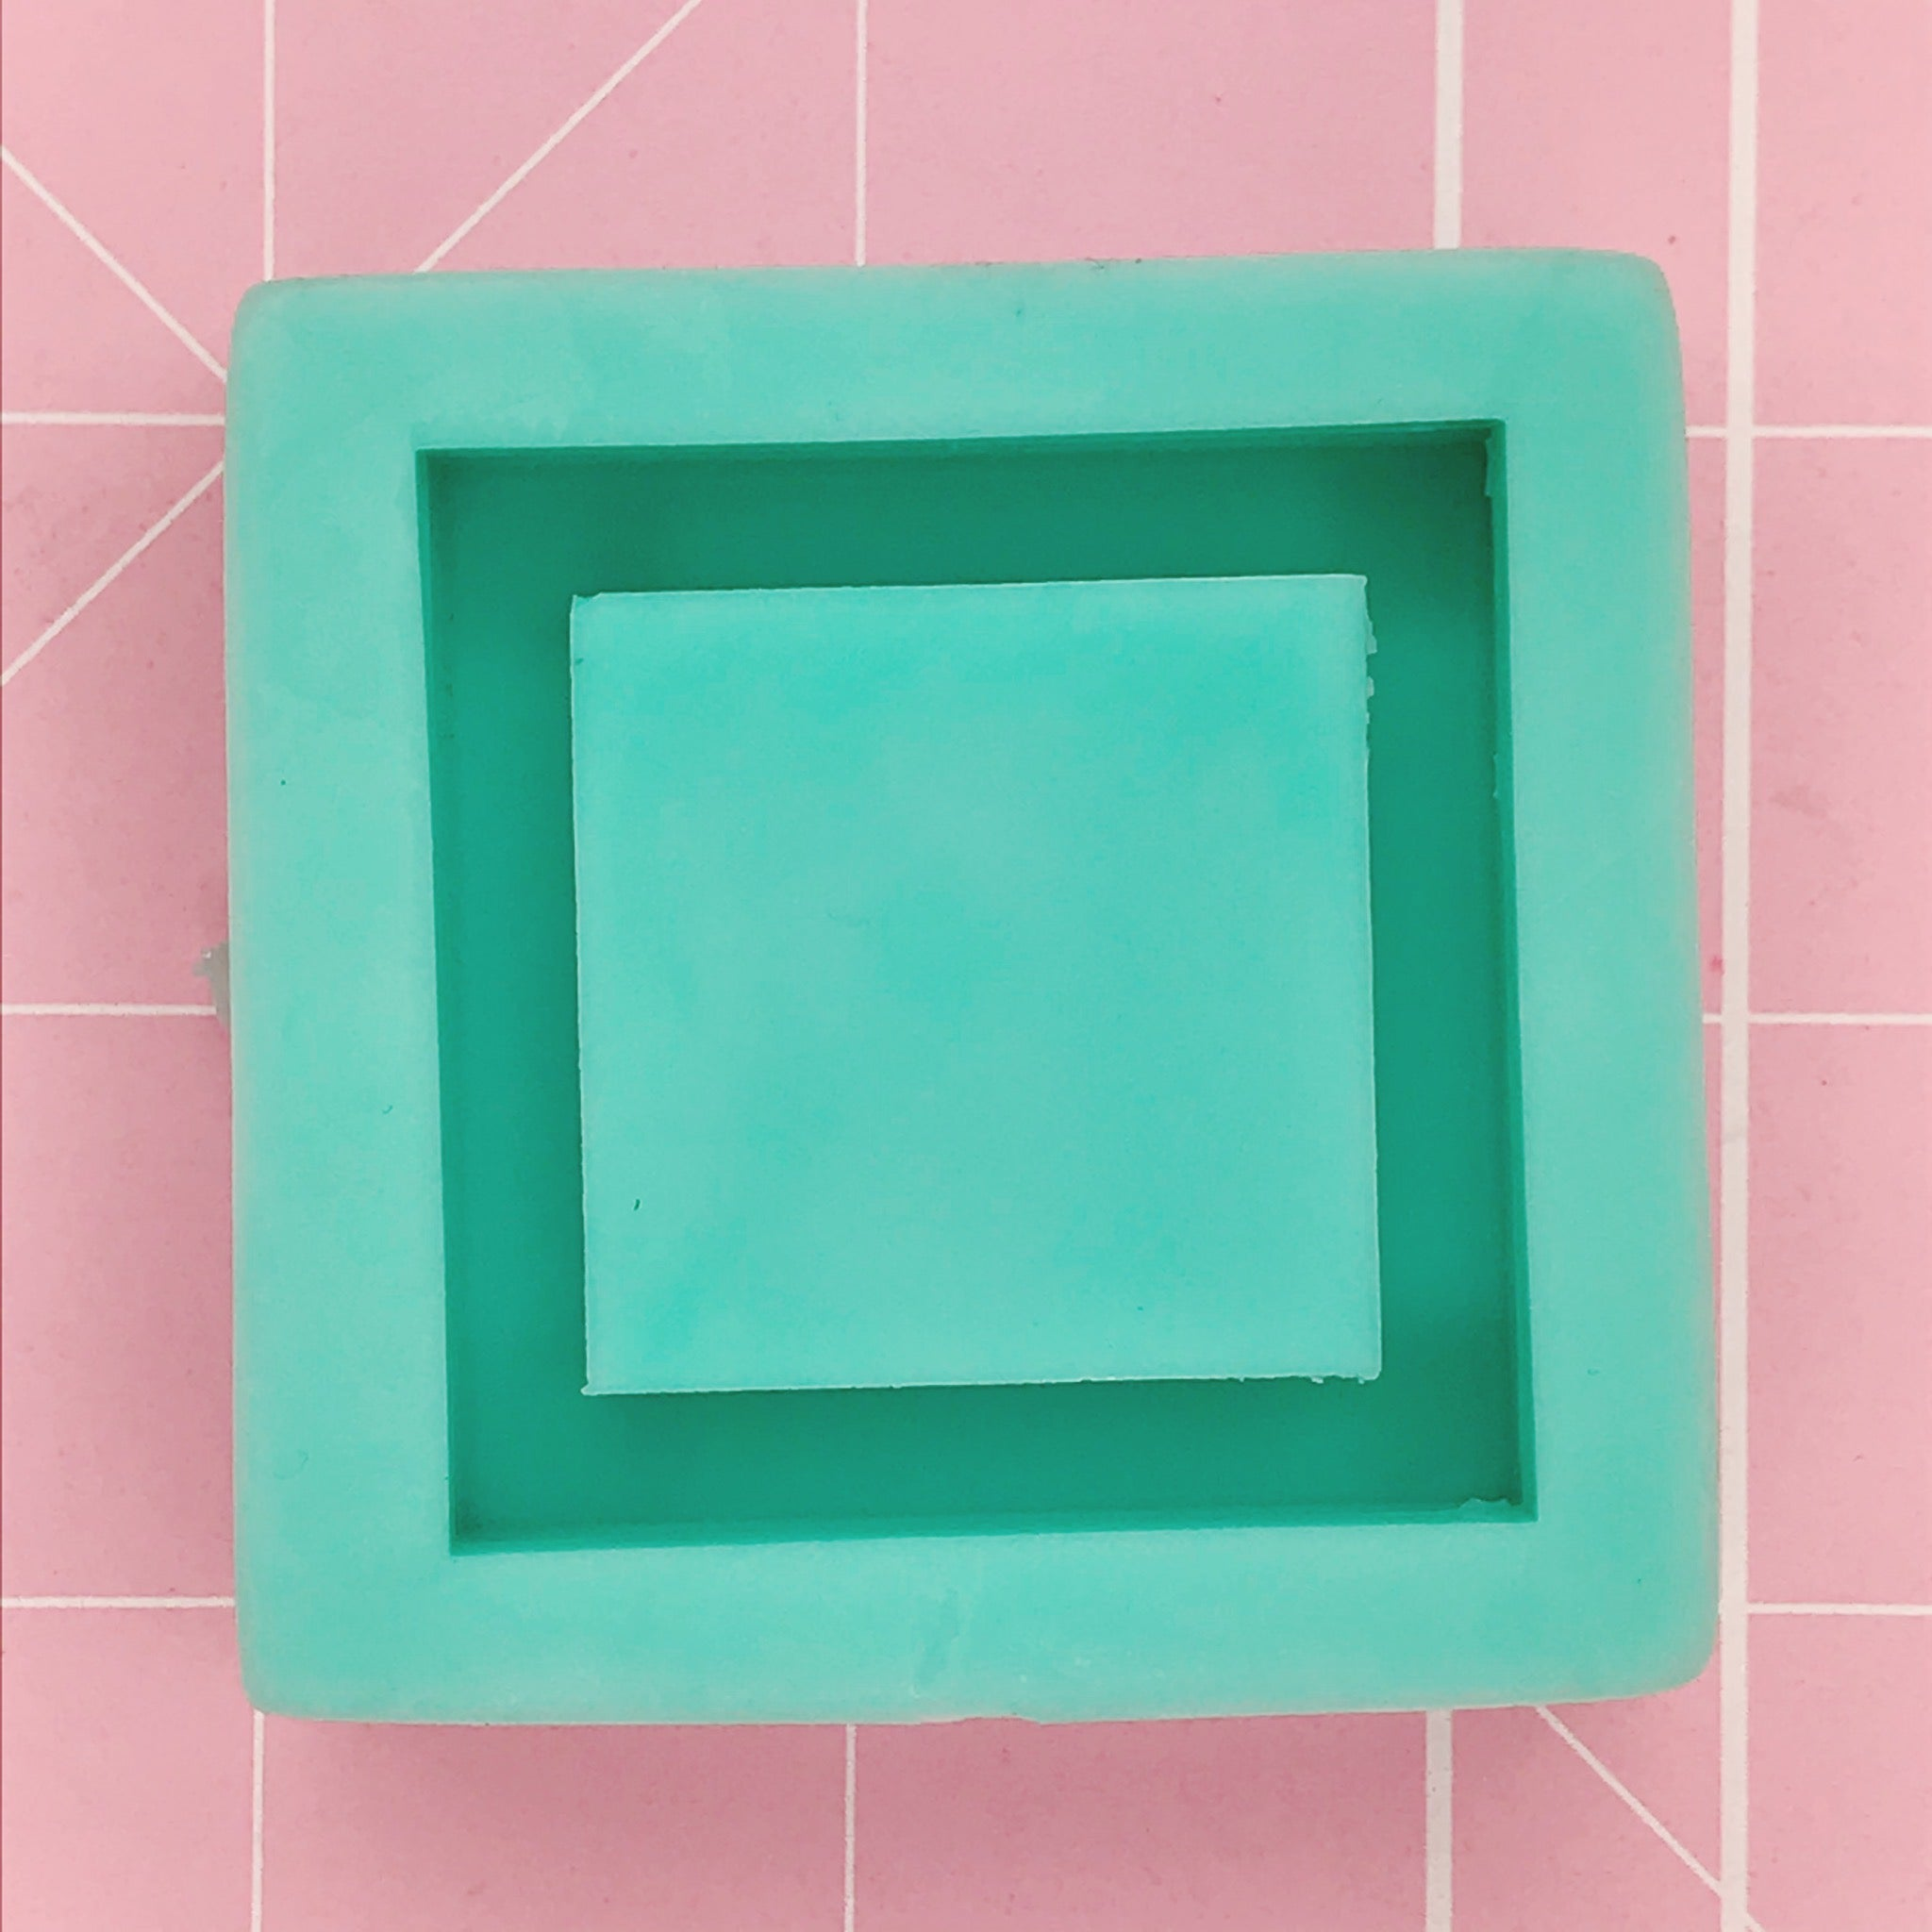 Square Mold - Square Grippie (Backed Shaker) - Chala Atelier & Supplies